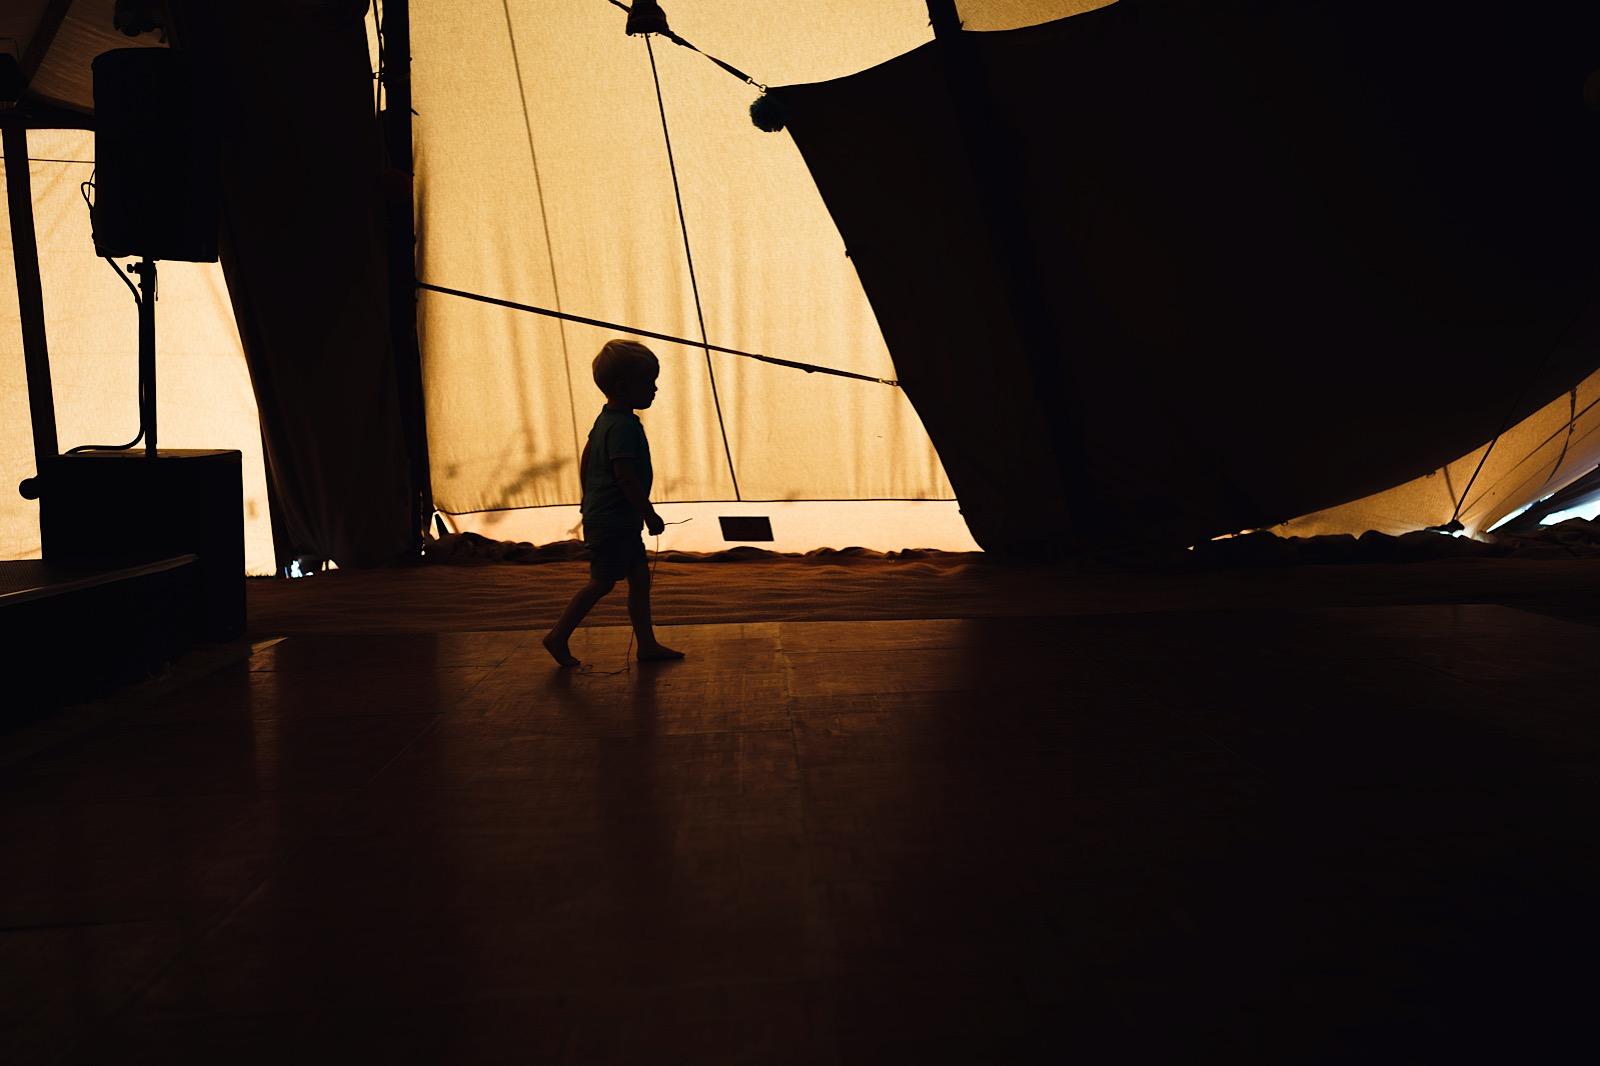 Silhouette of a child walking against the orange surface of a tipi during a wedding reception